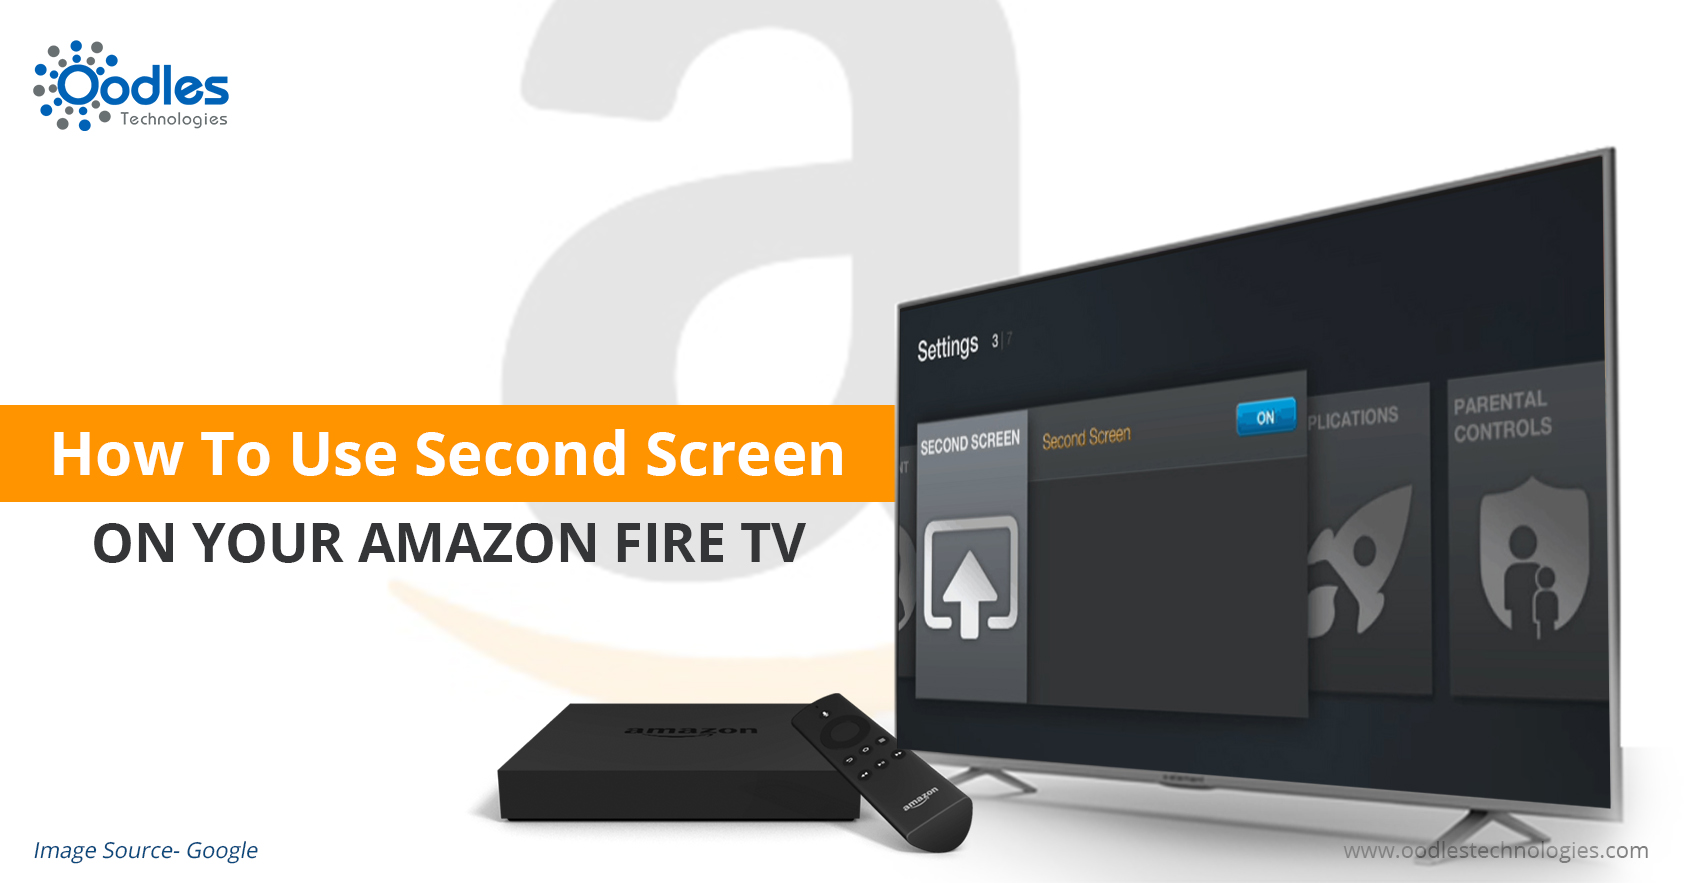 How To Use Second Screen On Your Amazon Fire TV